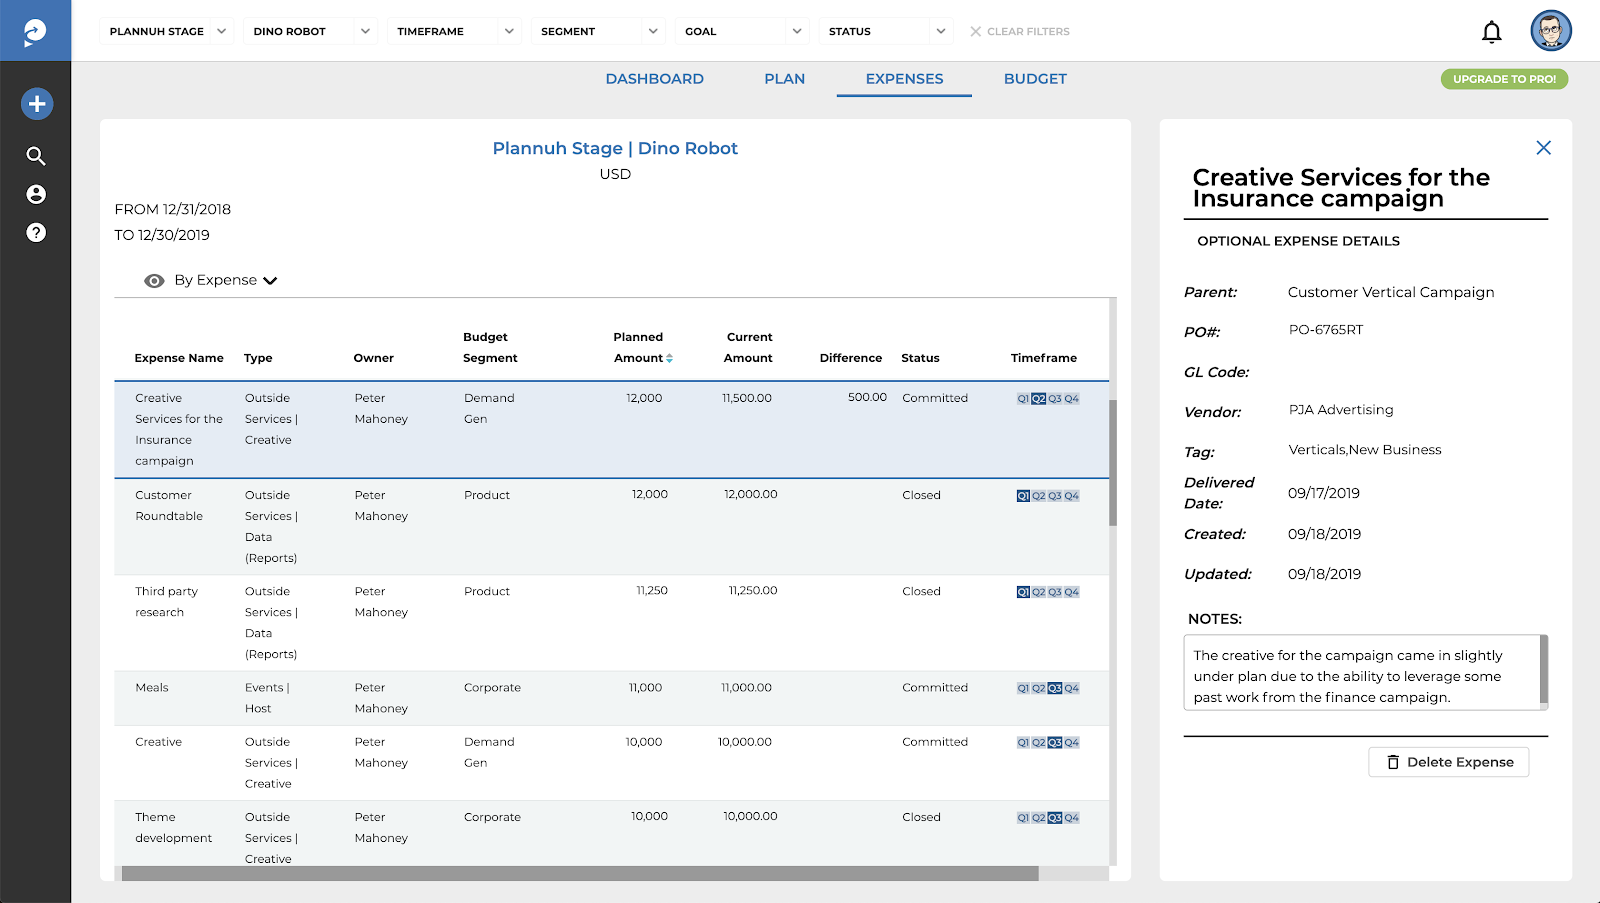 Tracking expense details in the Plannuh Expenses Tab